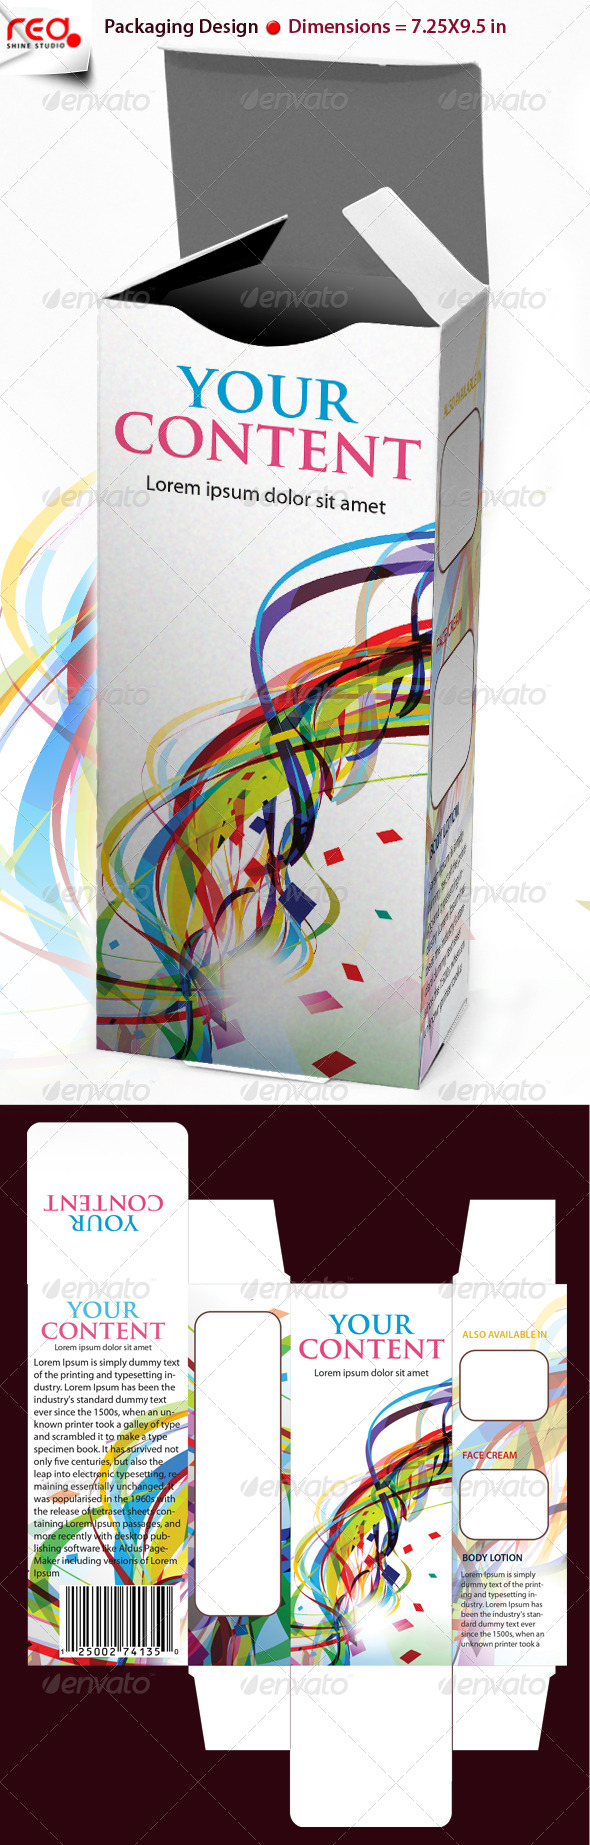 GraphicRiver 3D Box Template Design 231710